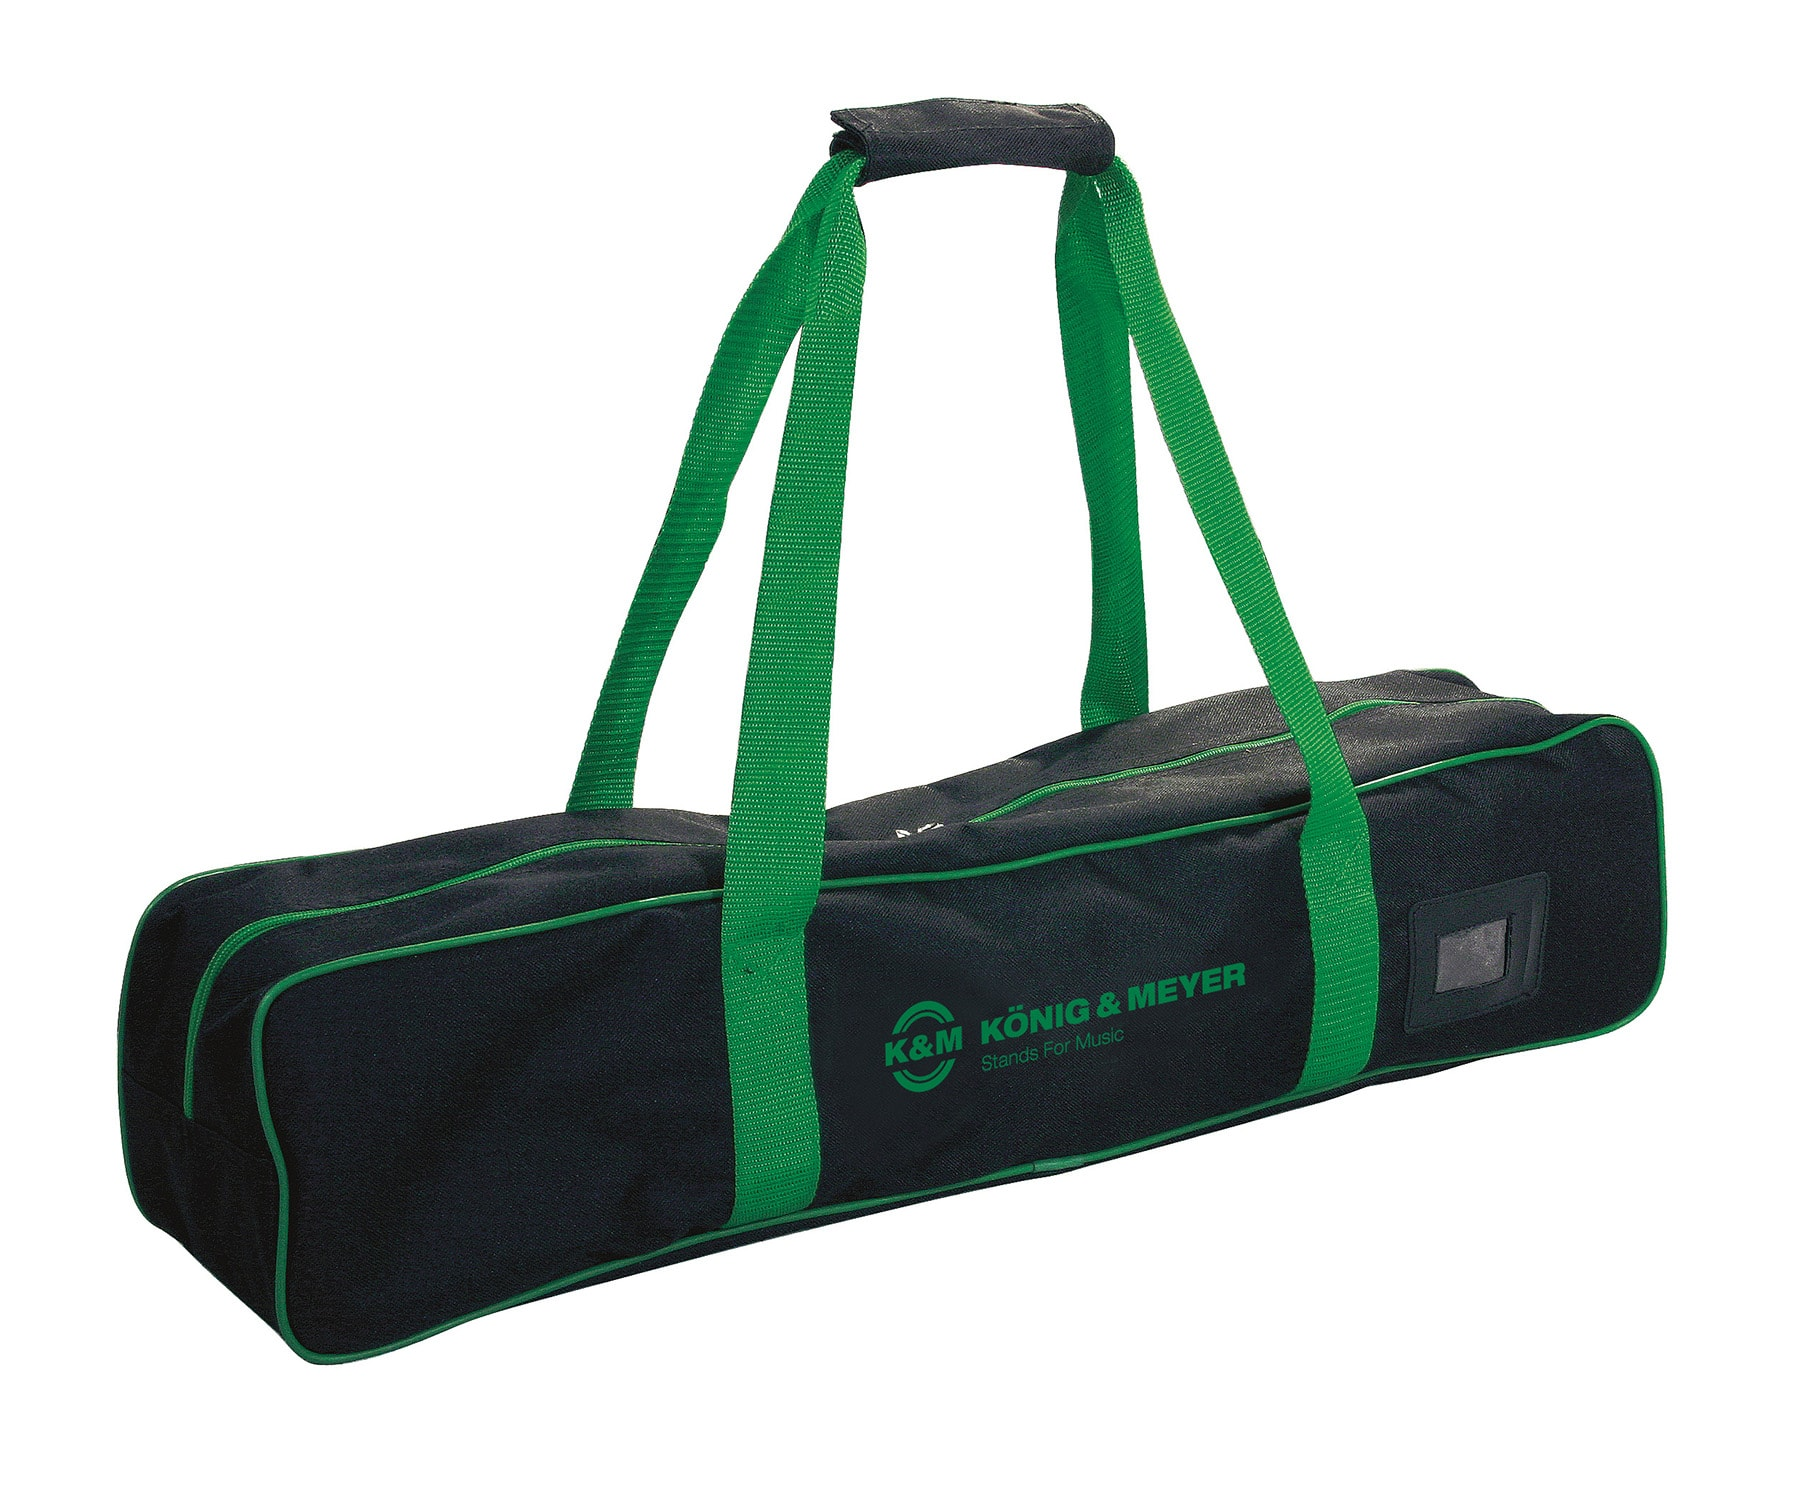 KM14922 - Carrying case horn stand